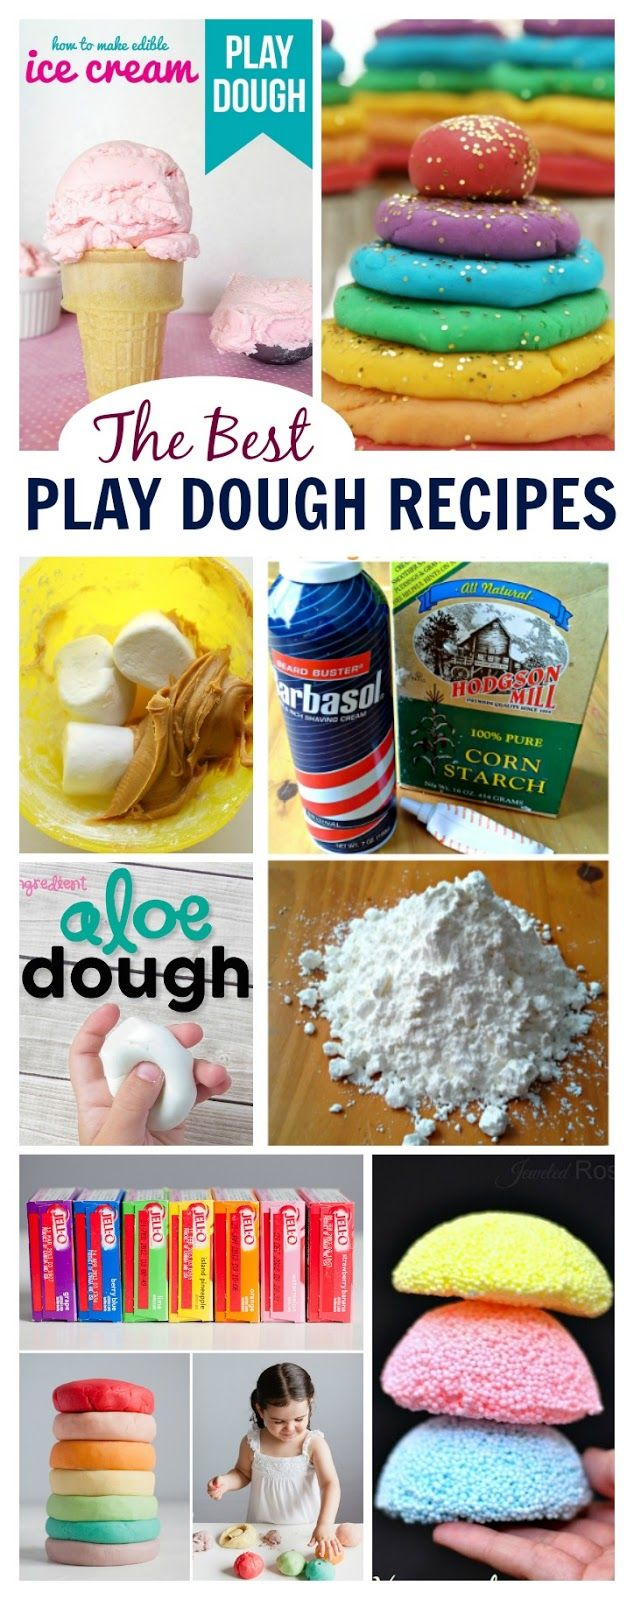 The very best play dough recipes for kids- FLOAM, foam dough, ice cream dough, galaxy dough, & more! Some I've never seen before!